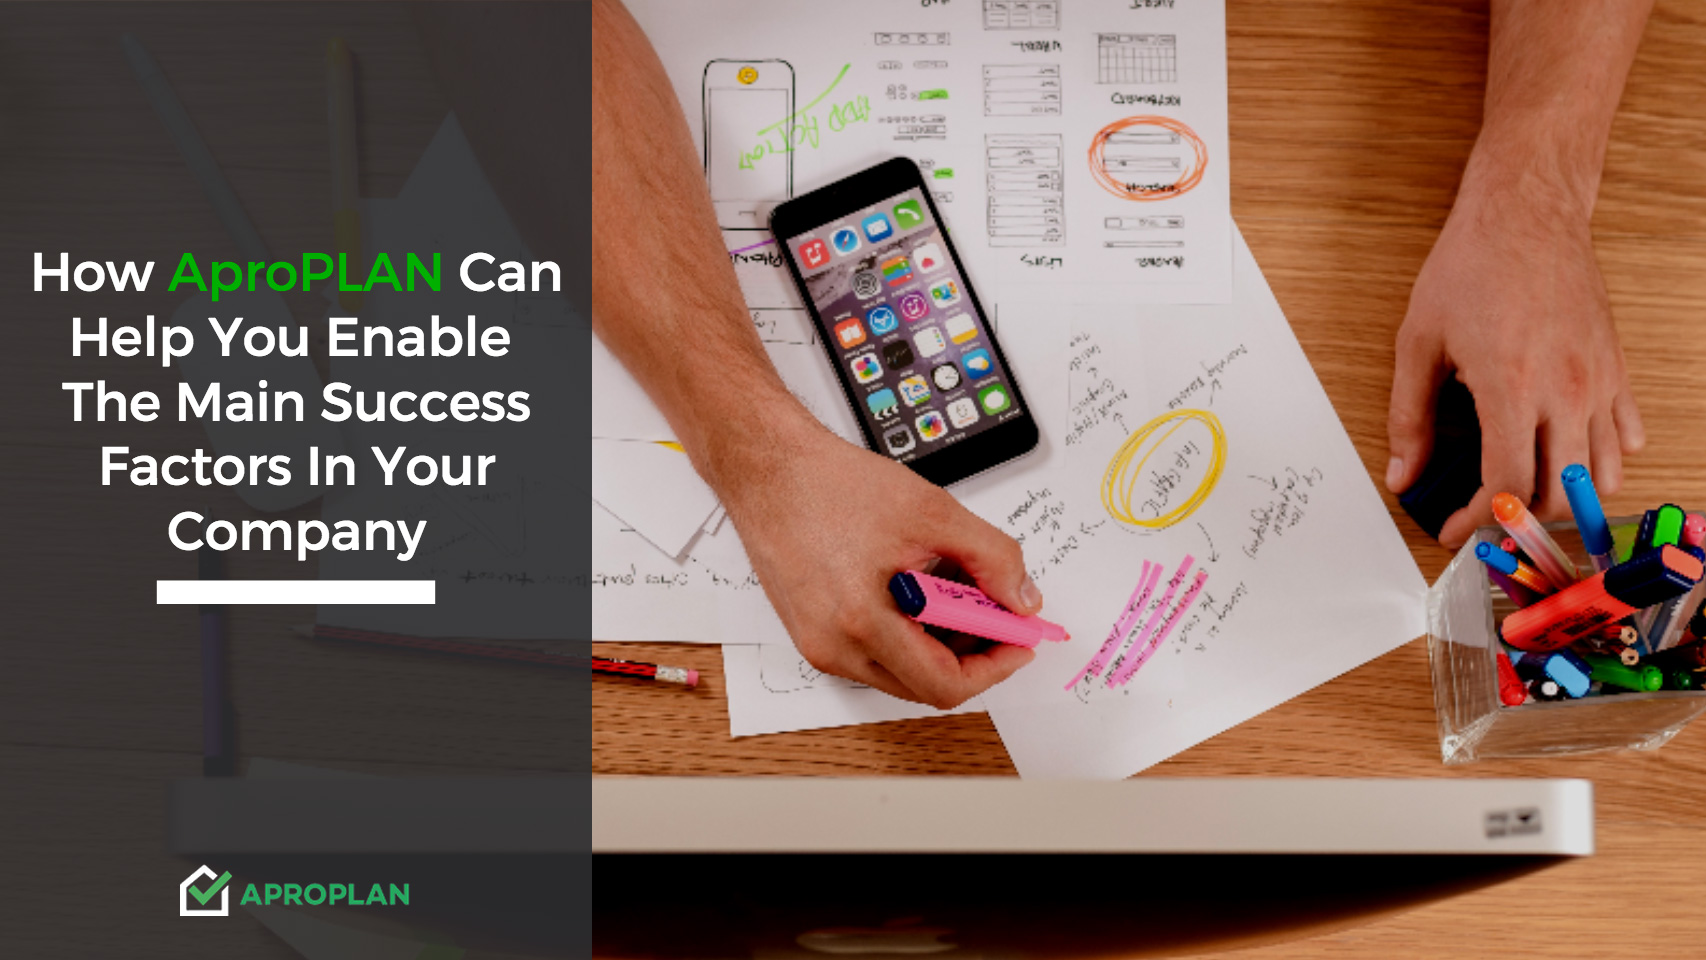 How AproPLAN Can Help You Enable The Main Success Factors In Your Company